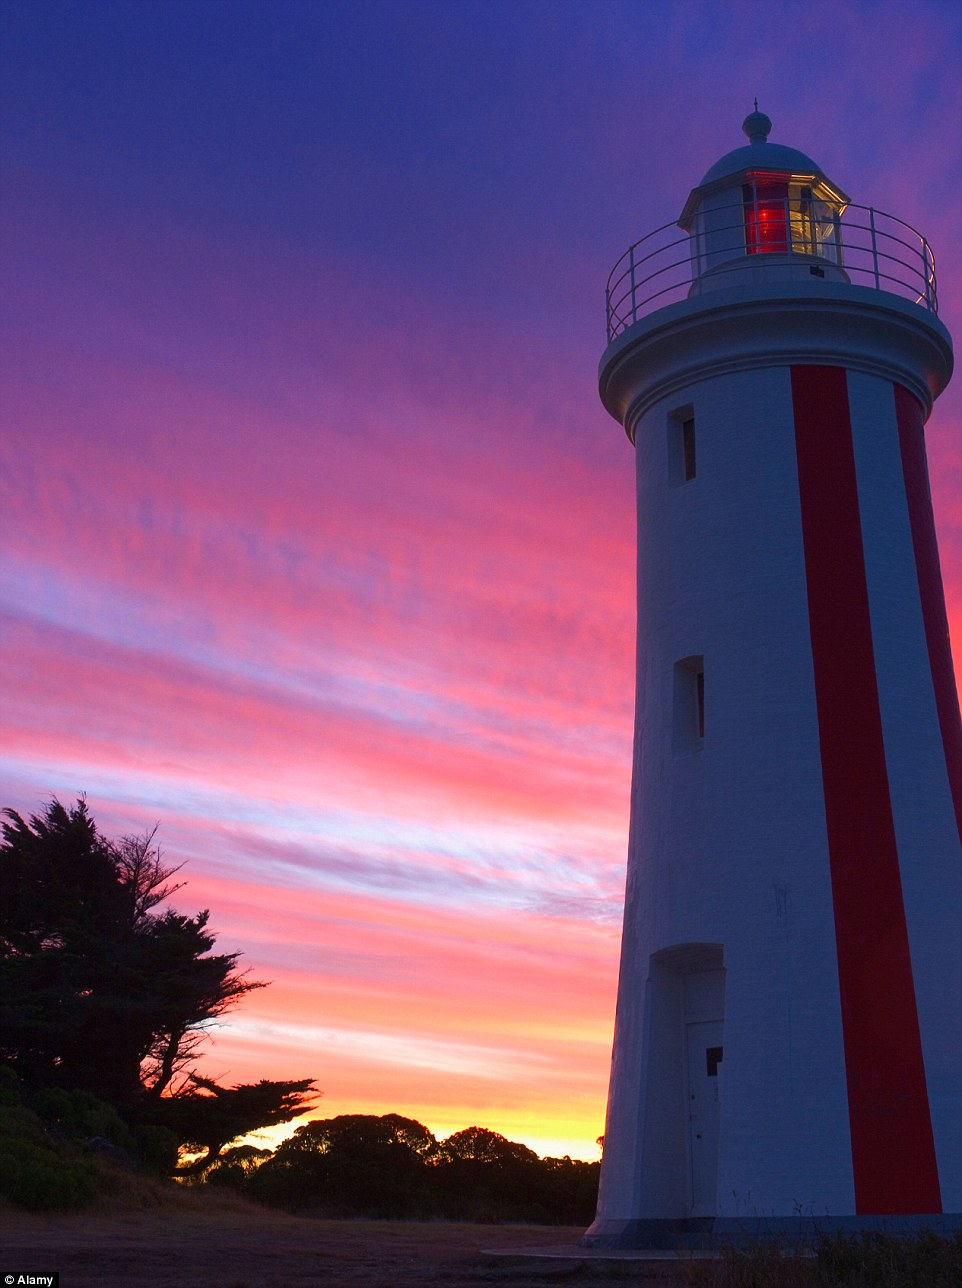 The Mersey Bluff Lighthouse, in Devonport, was built in 1889 and looks stunning at sunset